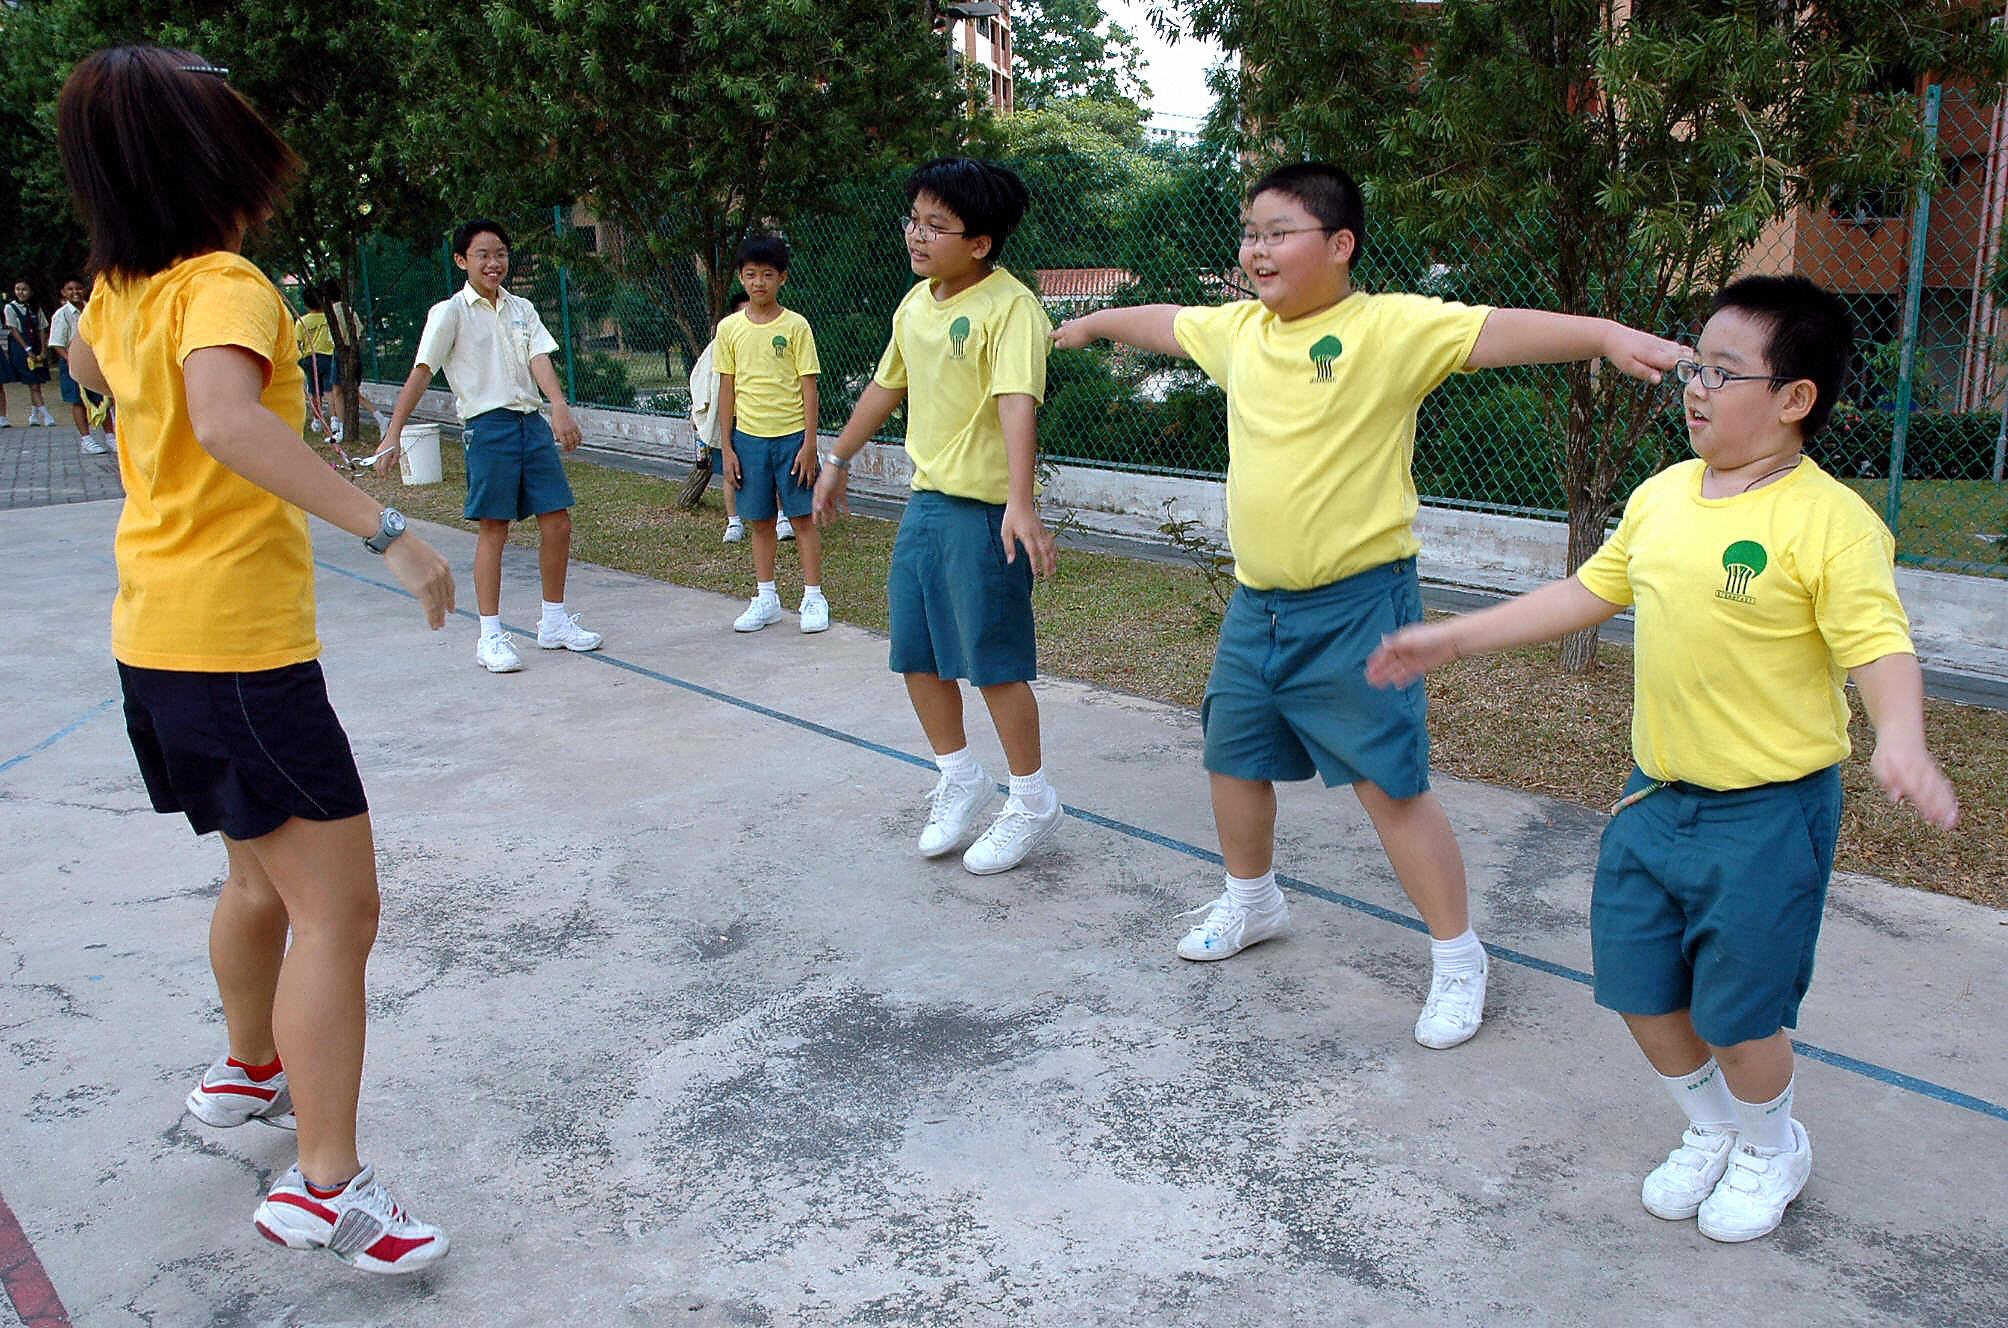 S Pore Children Overweight At 7 Years Old Likely To Become Obese Adults Nhg Report Mothership Sg News From Singapore Asia And Around The World